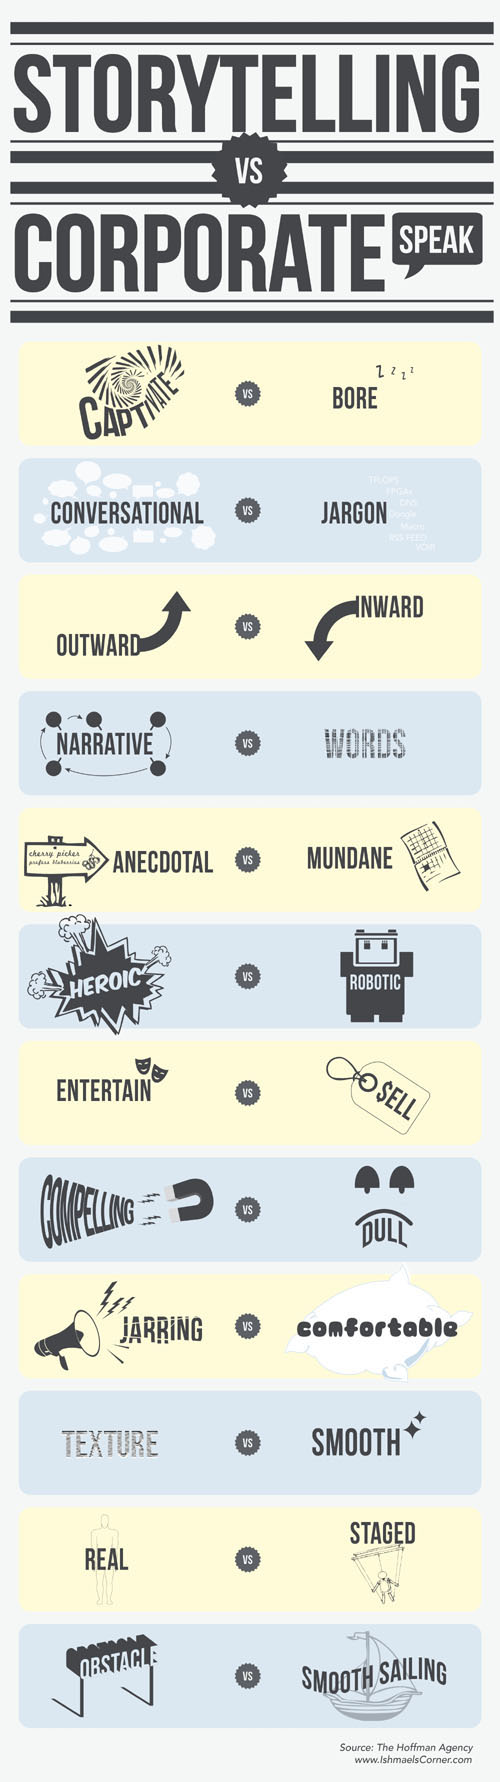 NEW INFOGRAPHIC: Storytelling vs Corporate Speak